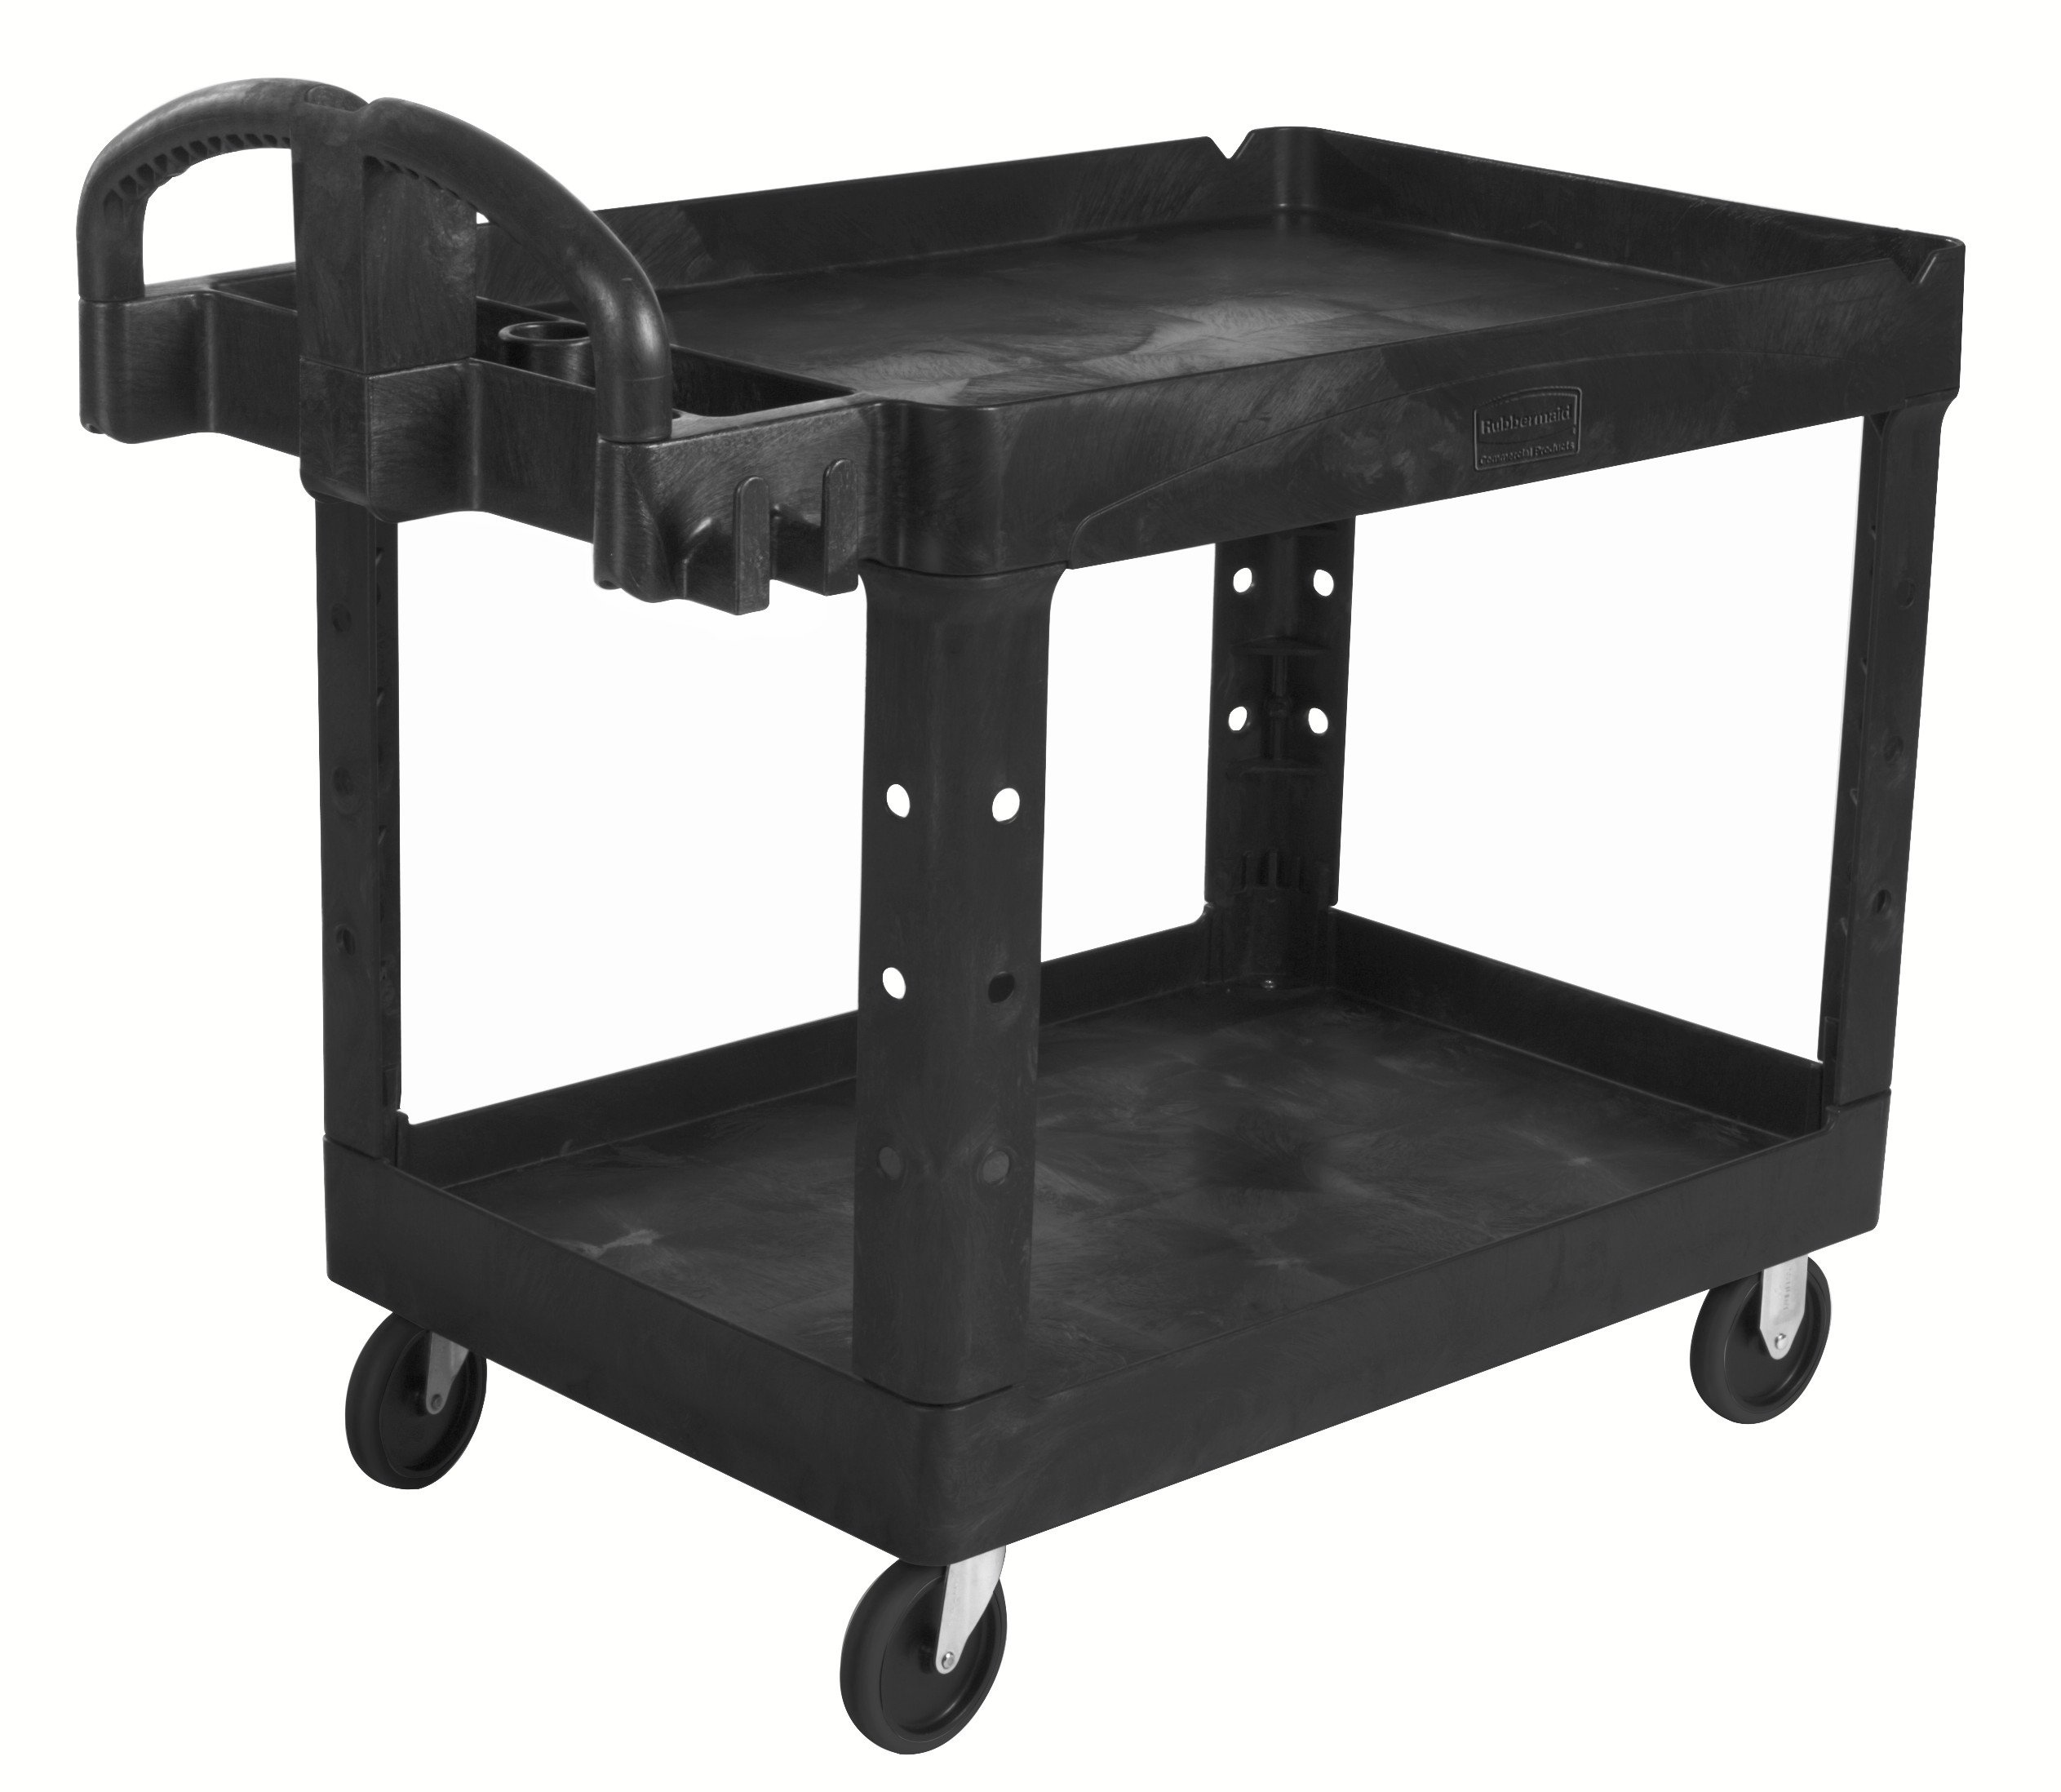 Rubbermaid Commercial Executive Series Heavy-Duty 2-Shelf Utility Cart with Quiet Casters, 1867535